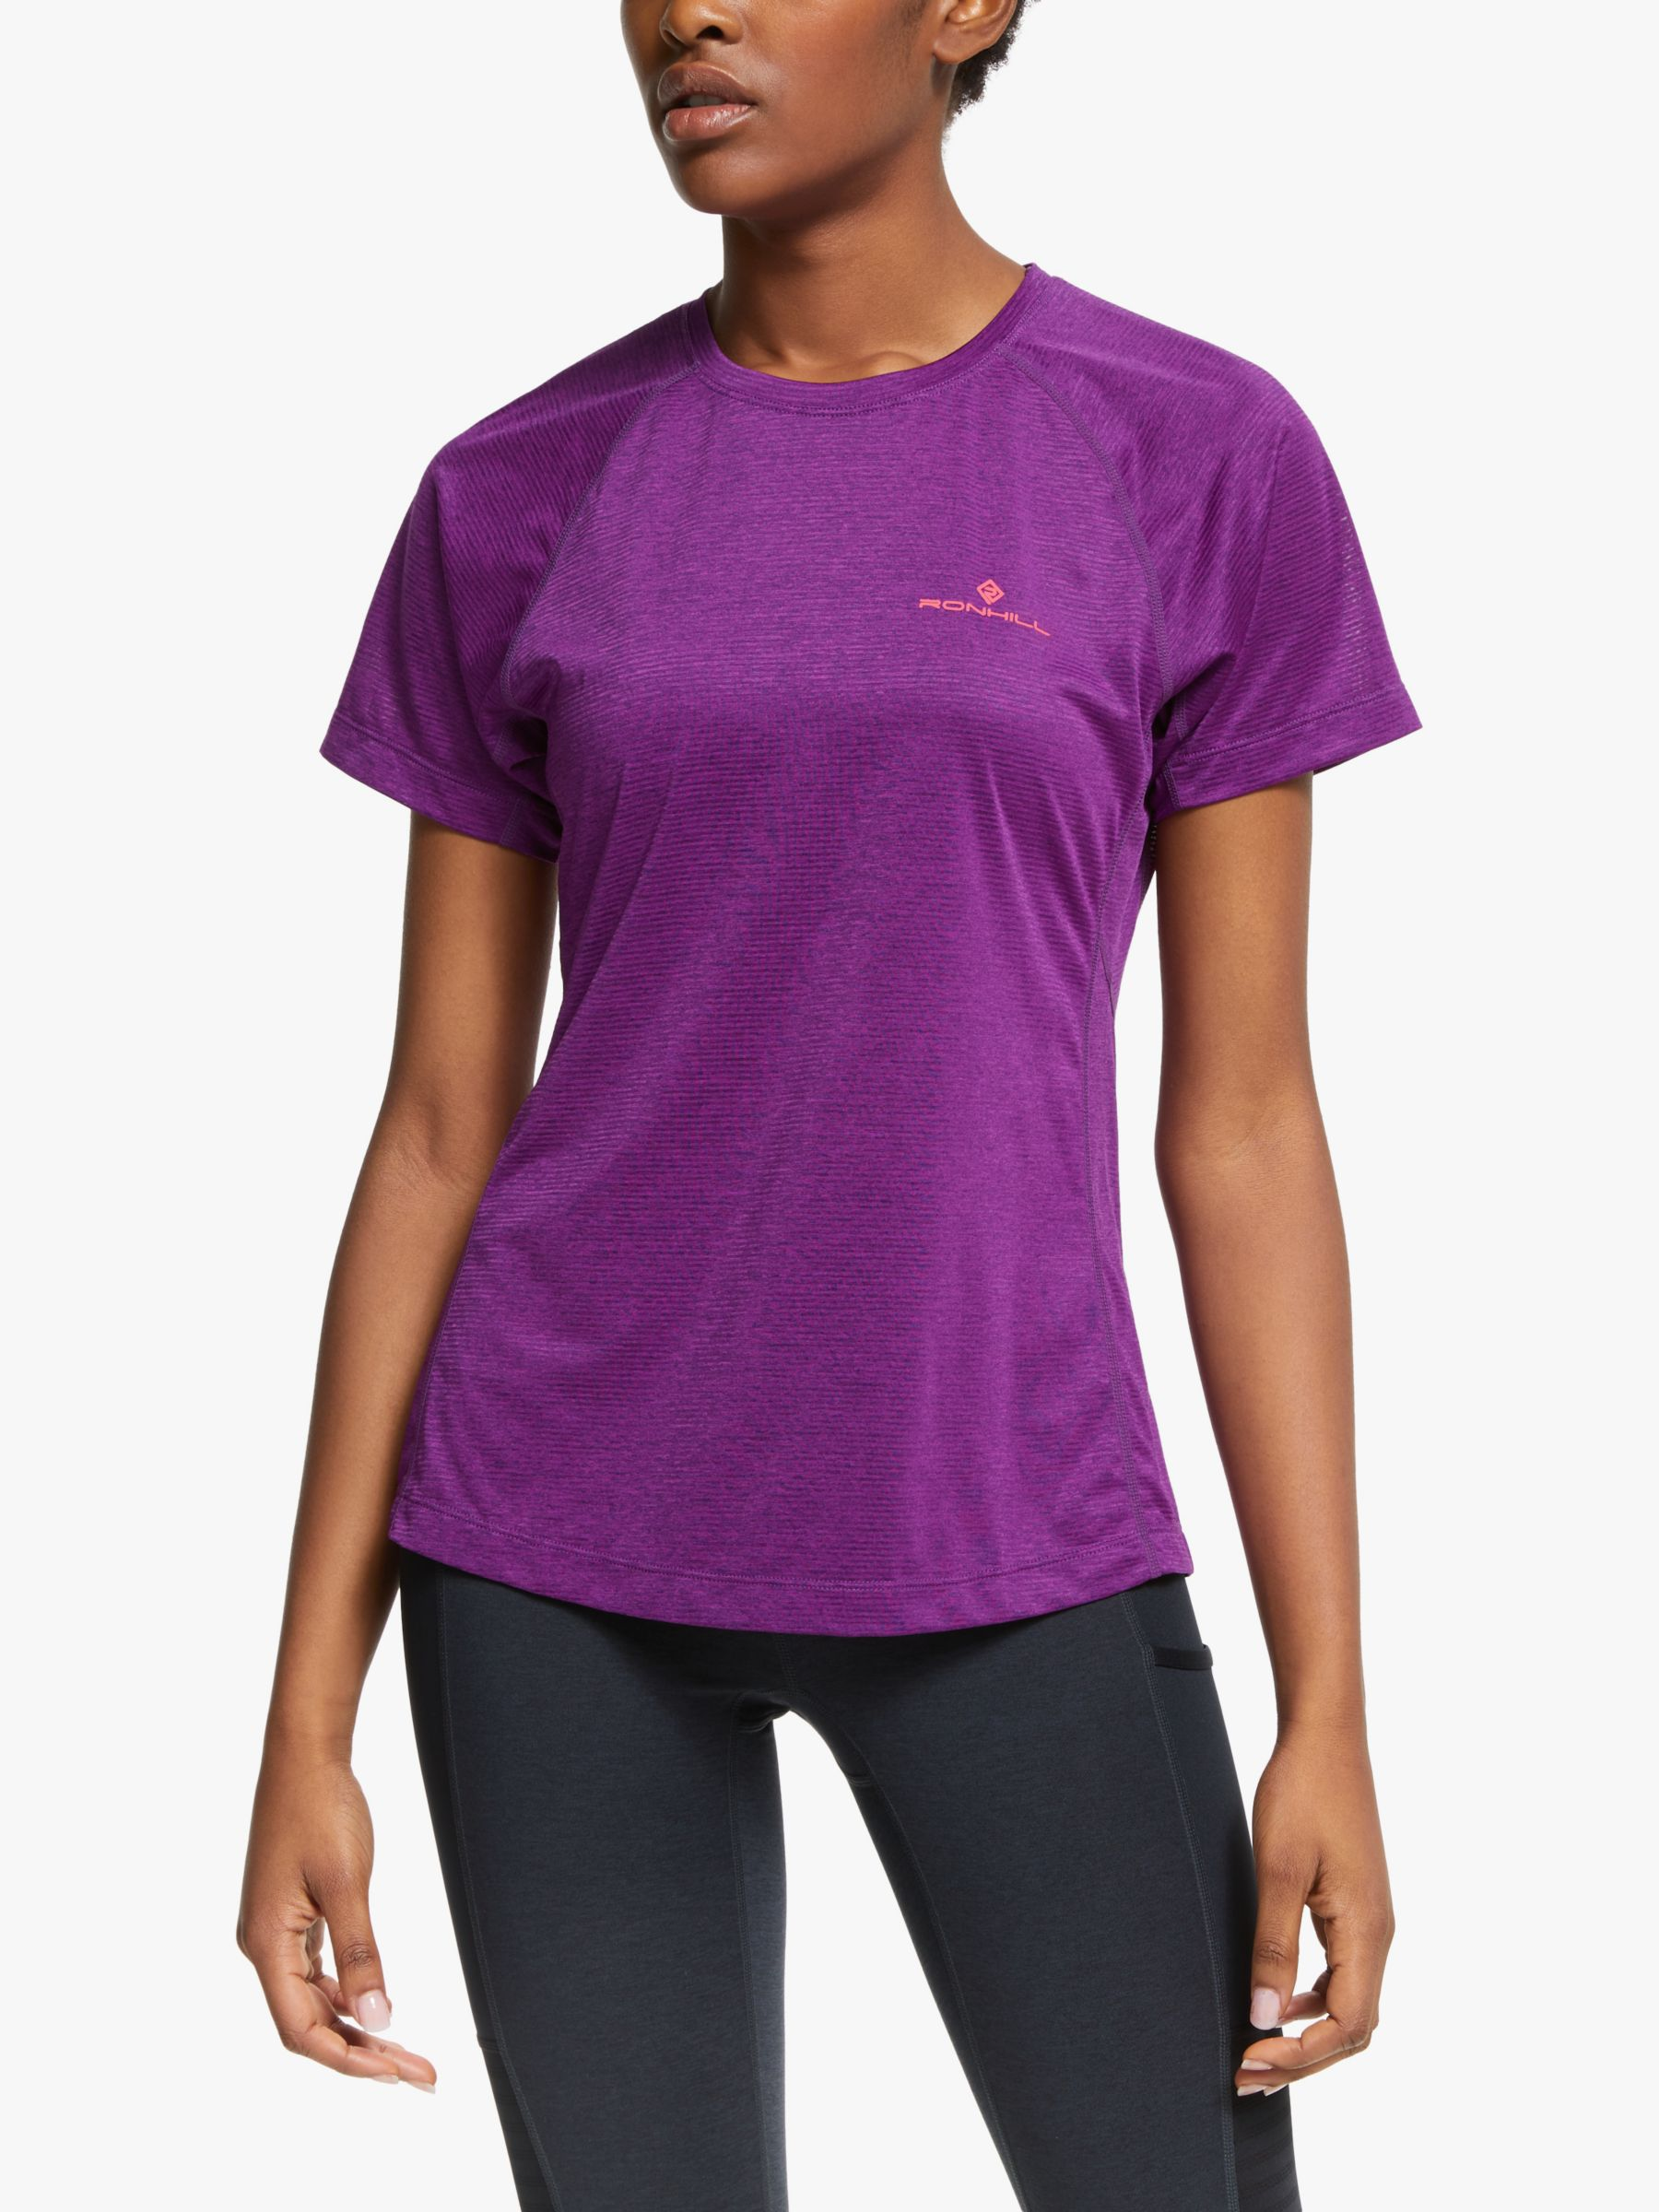 Ronhill Ronhill Stride Short Sleeve Running Top